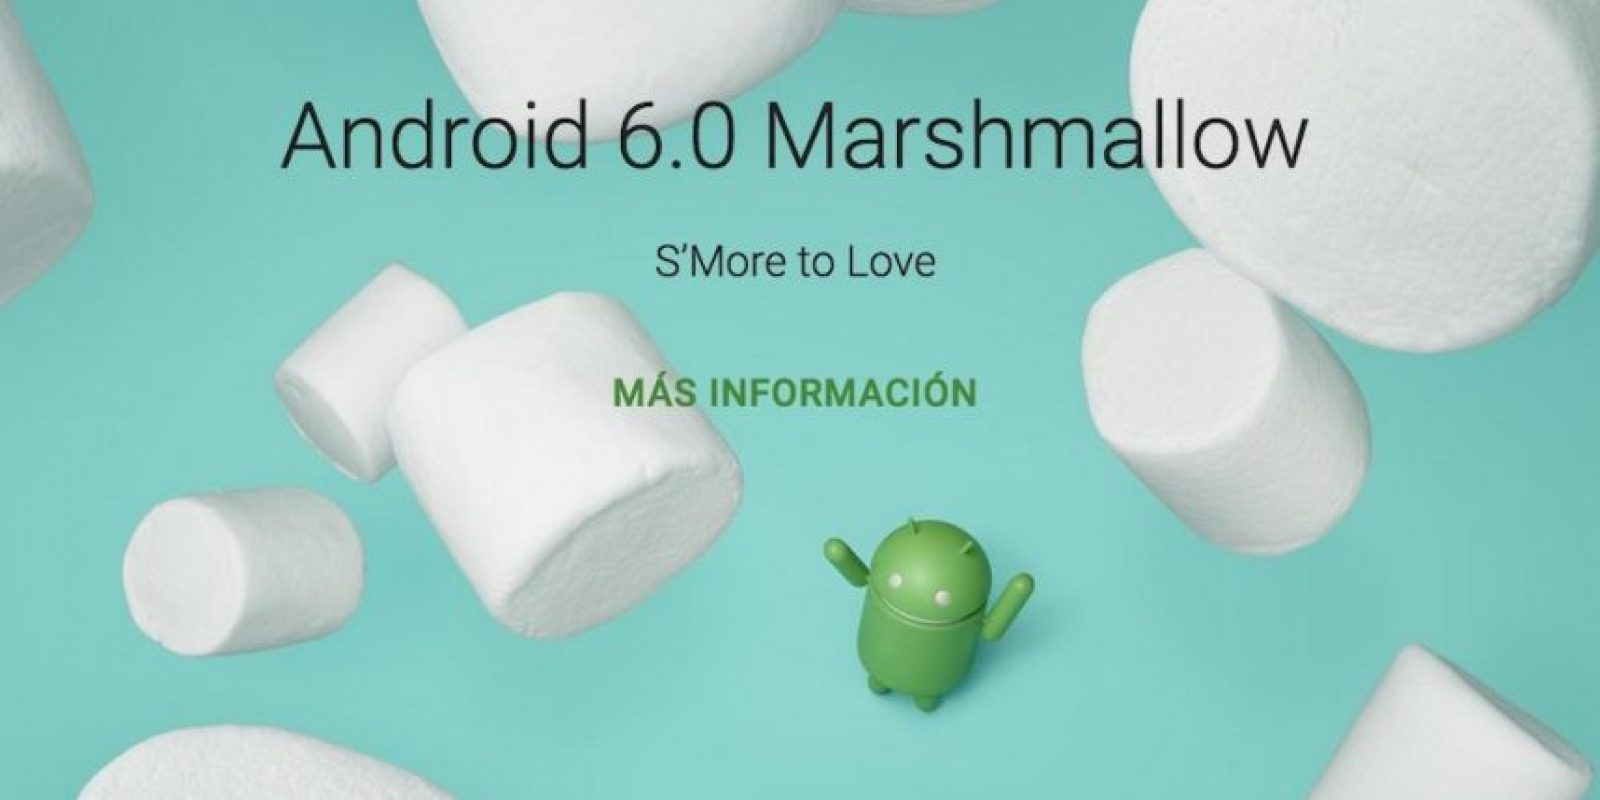 Android 6.0 Marshmallow ya está disponible en los dispositivos Nexus. Foto: Google